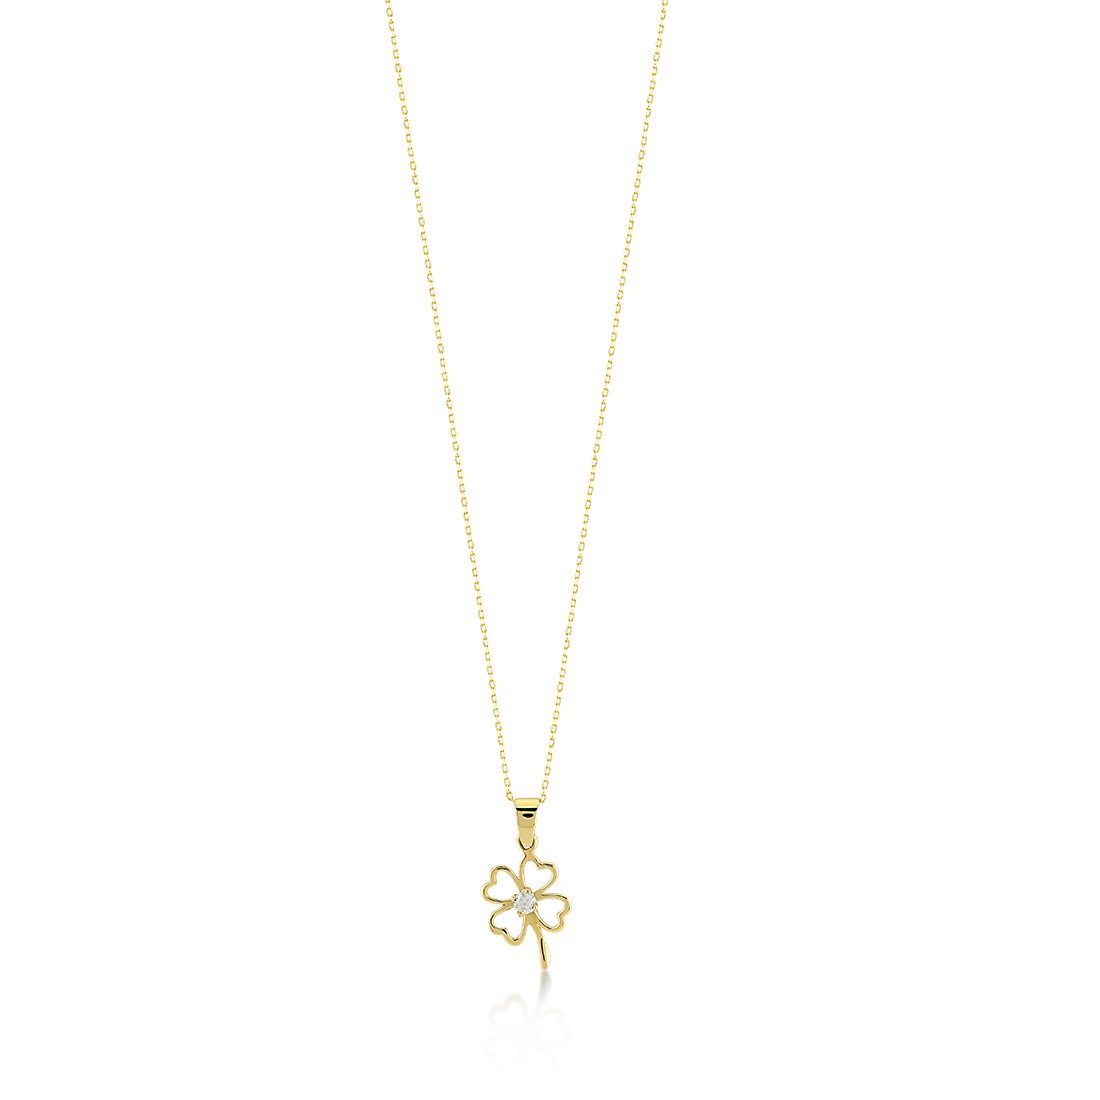 699e6c308 Amazon.com: Gelin 14k Real Gold Cubic Zirconia Good Luck Four Leaf Heart  Simple Clover Chain Necklace - Women Certified Fine Jewelry Birthday Gift,  ...